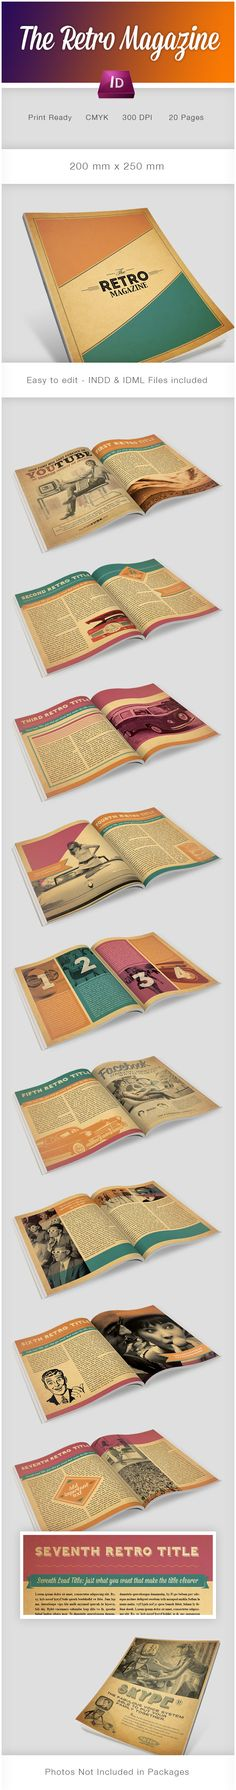 Retro Magazine - estilo retro y uso de color muy interesante. Un layout bastante…